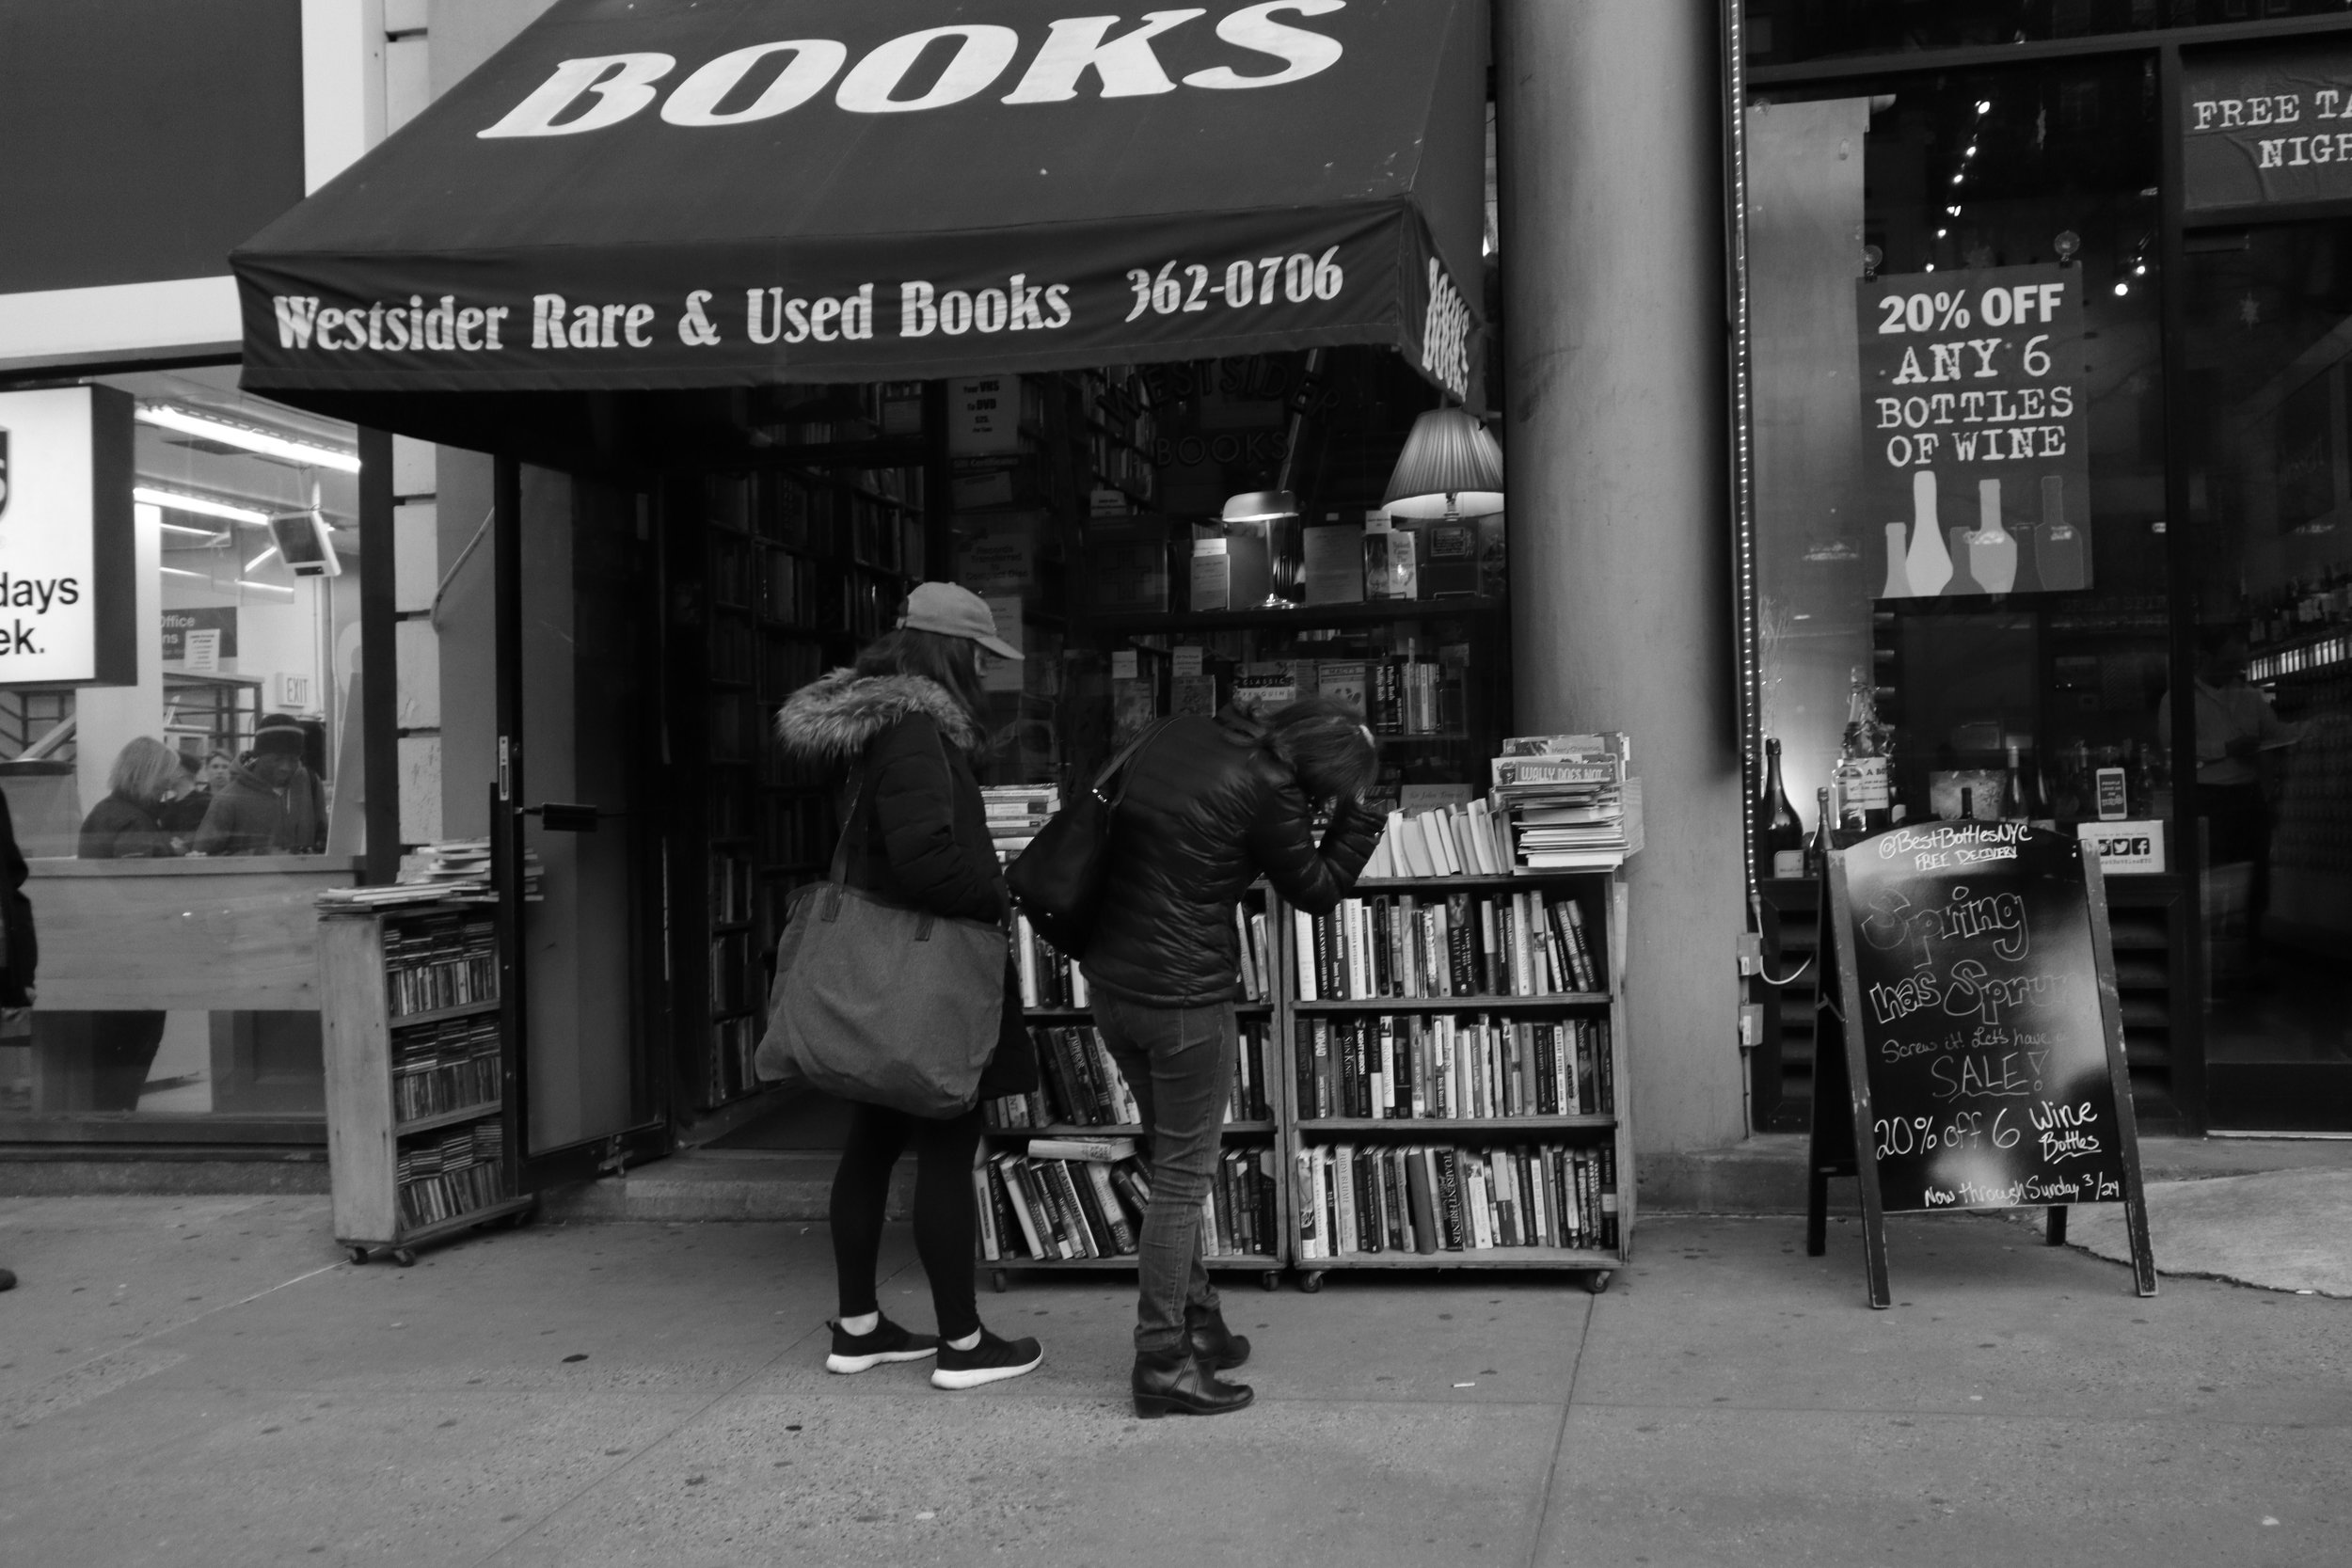 Book shopping in New York